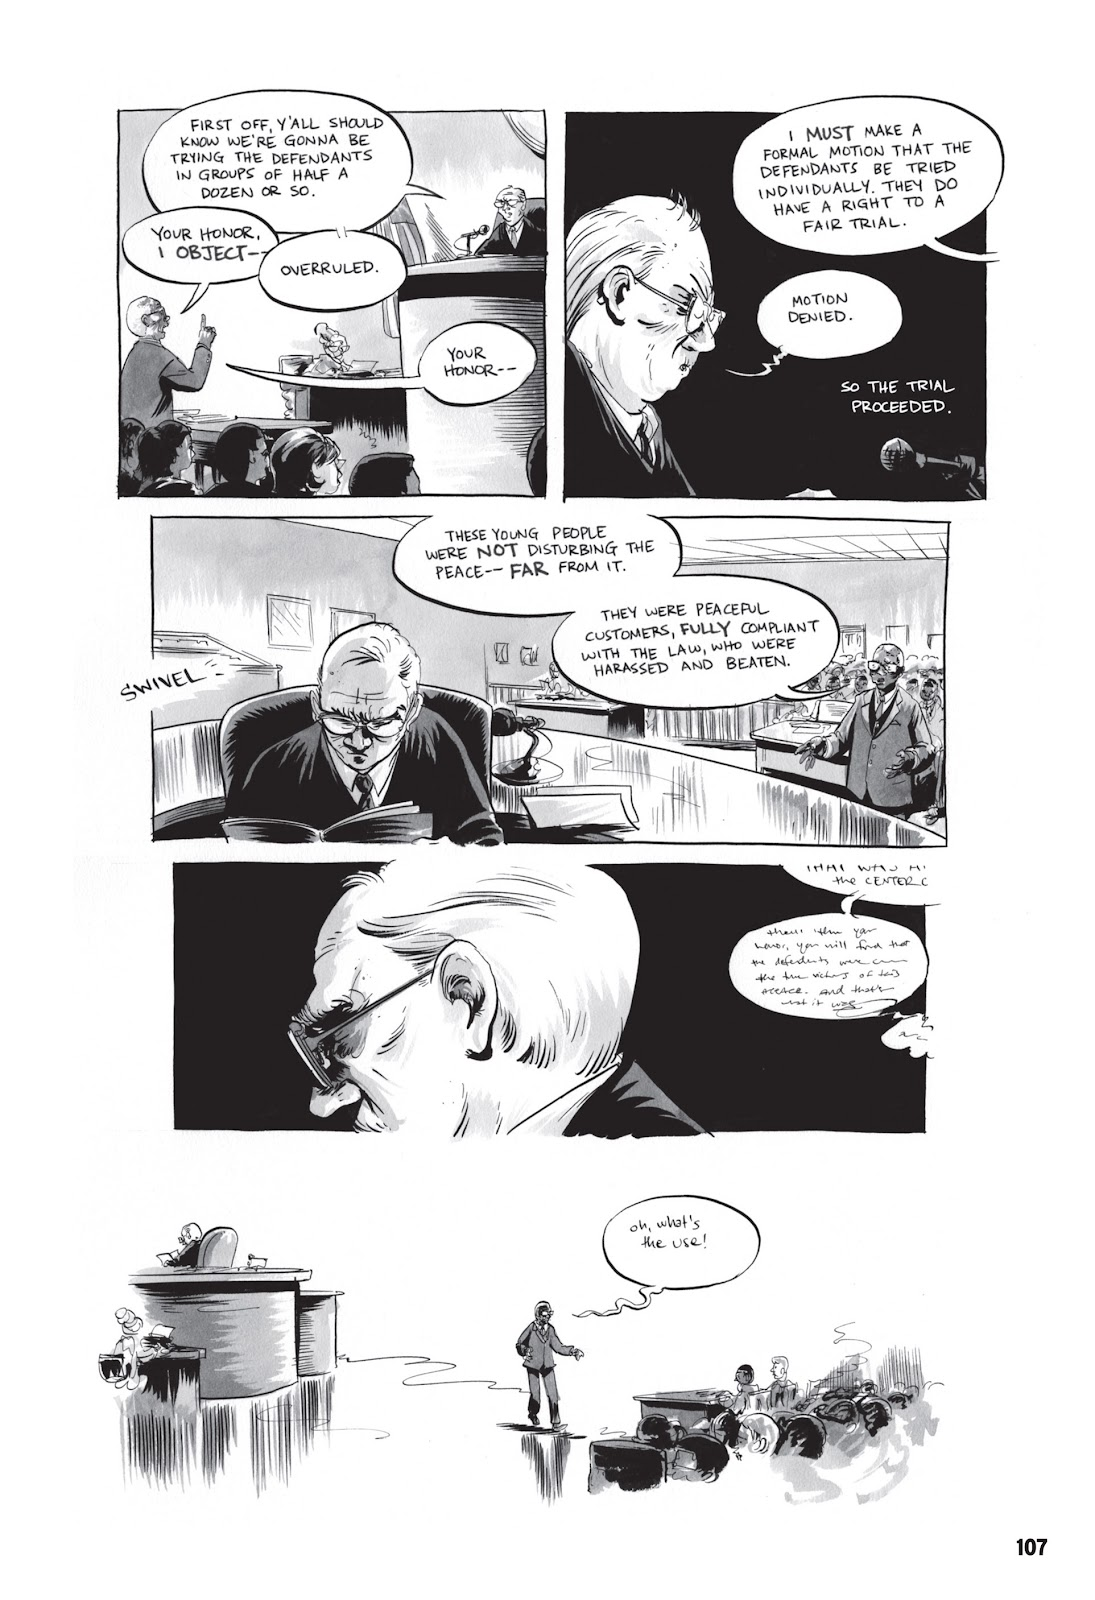 March 1 Page 104